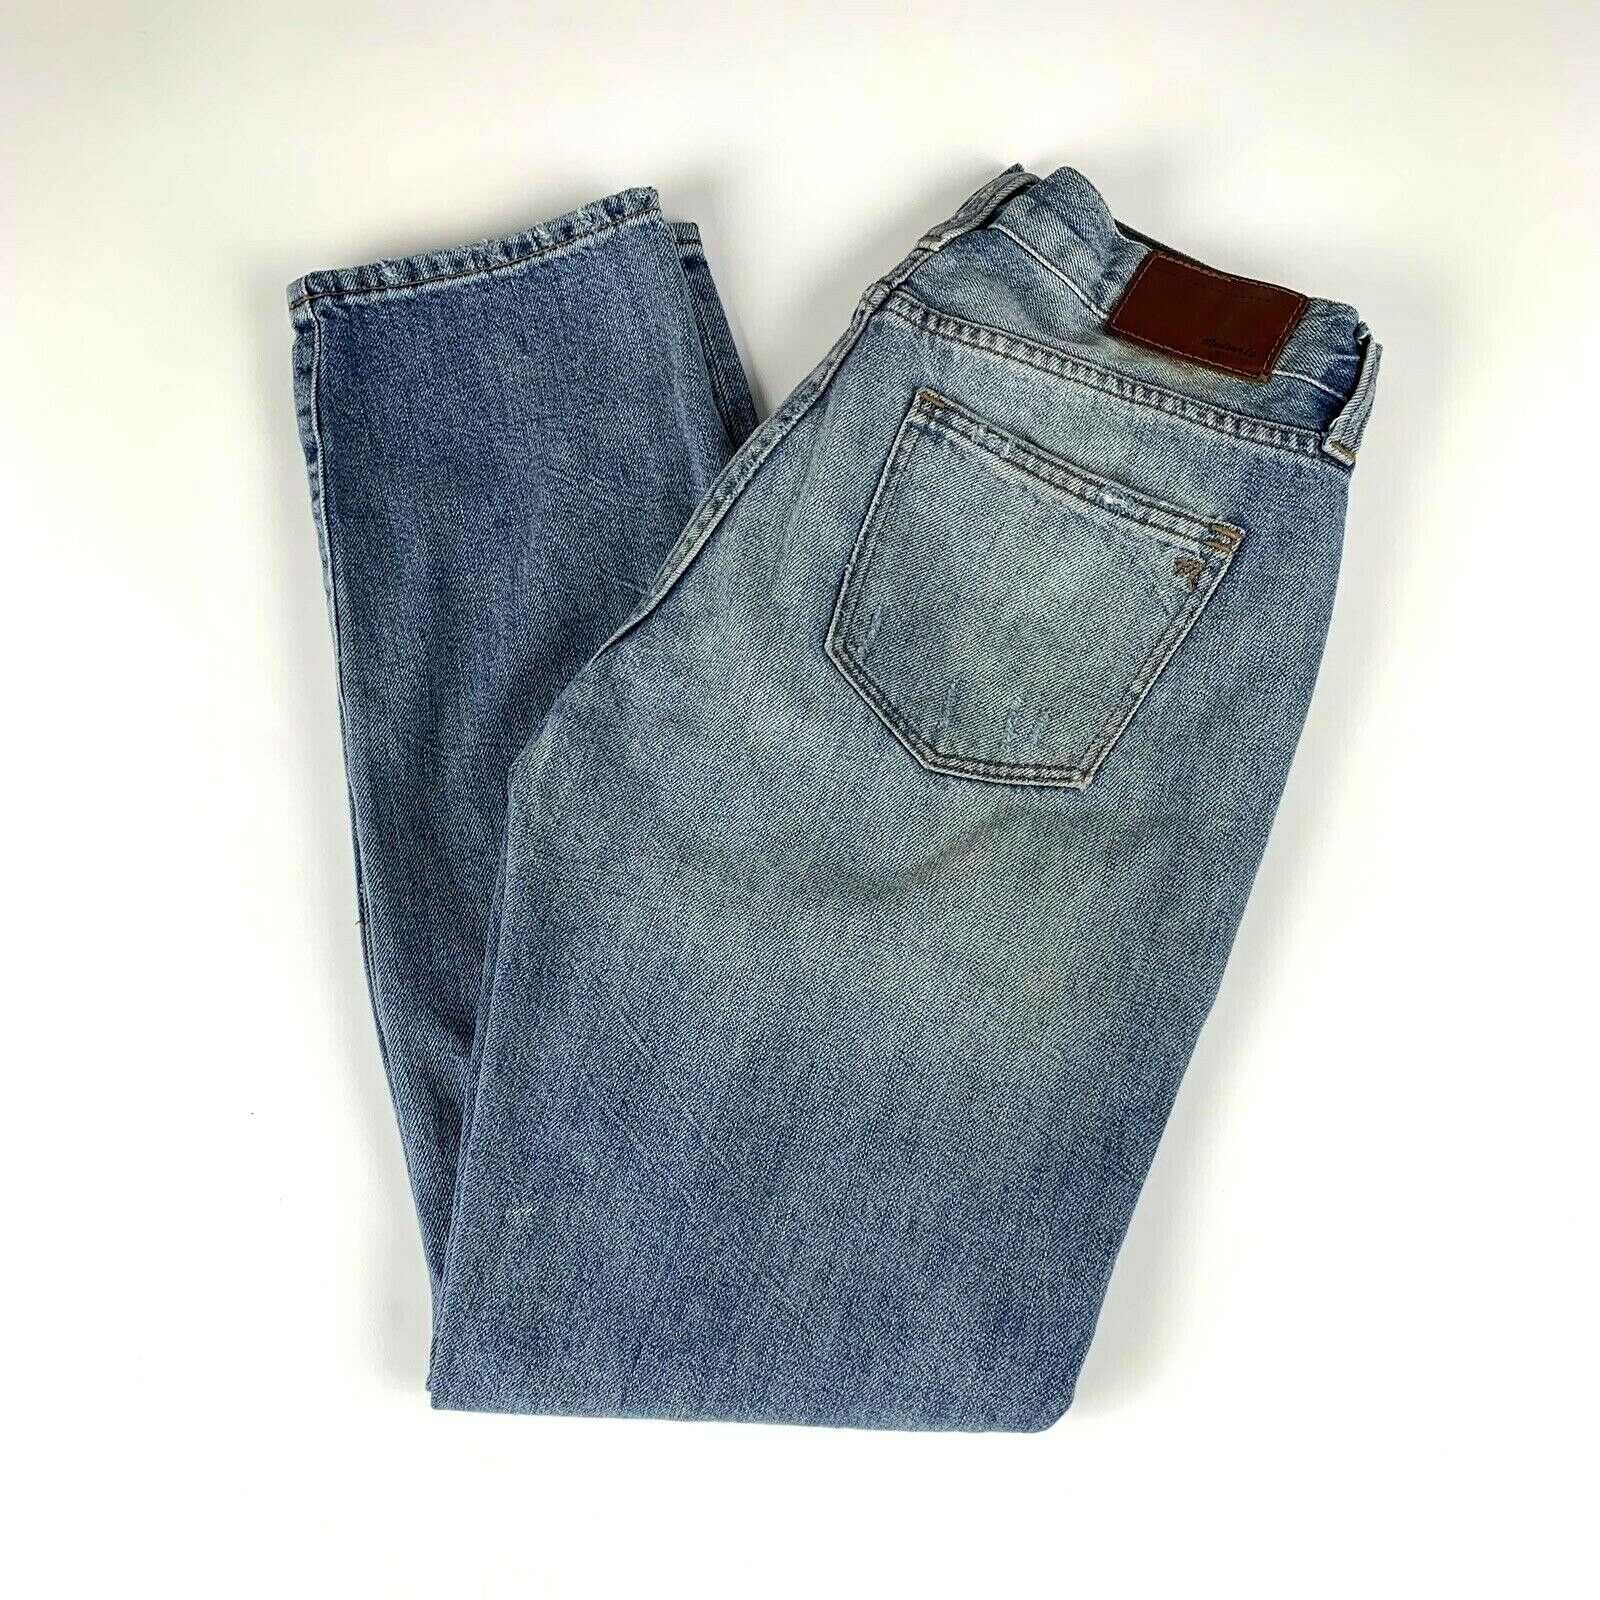 Madewell Womens Size 25 Jeans Boy Jean Cotton Destructed Style